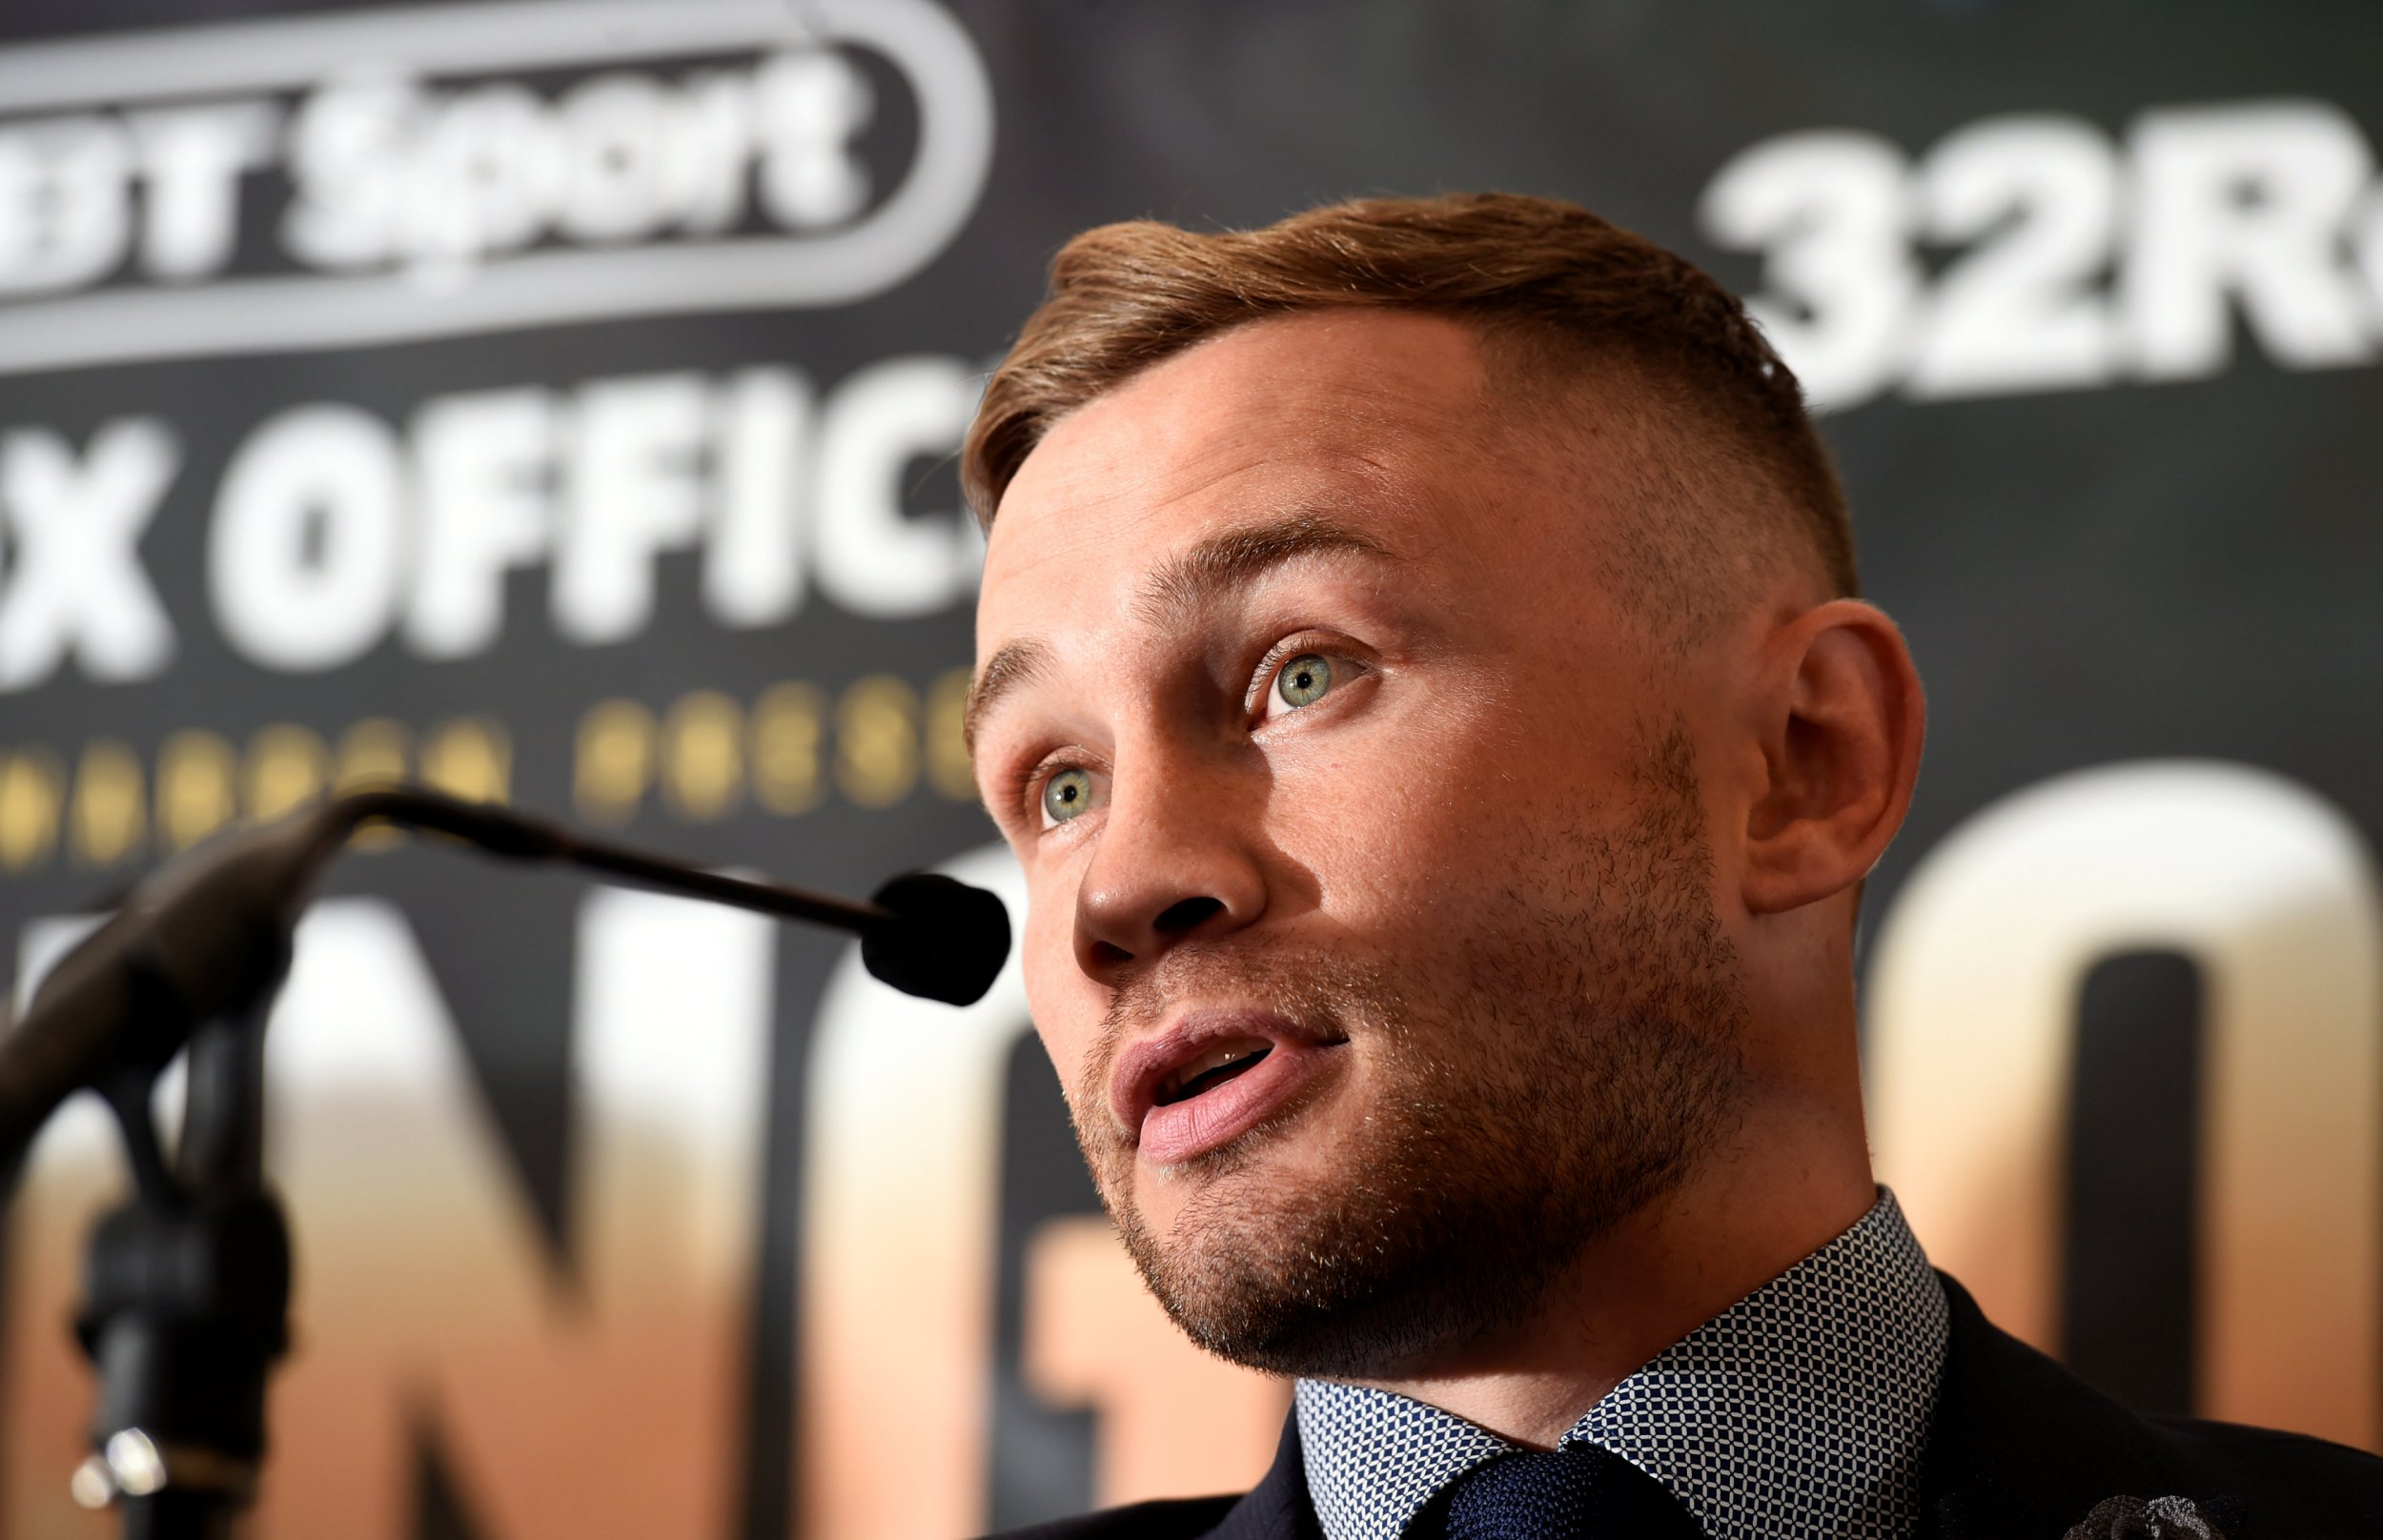 Carl Frampton will have three gameplans to beat Josh Warrington on 22 December